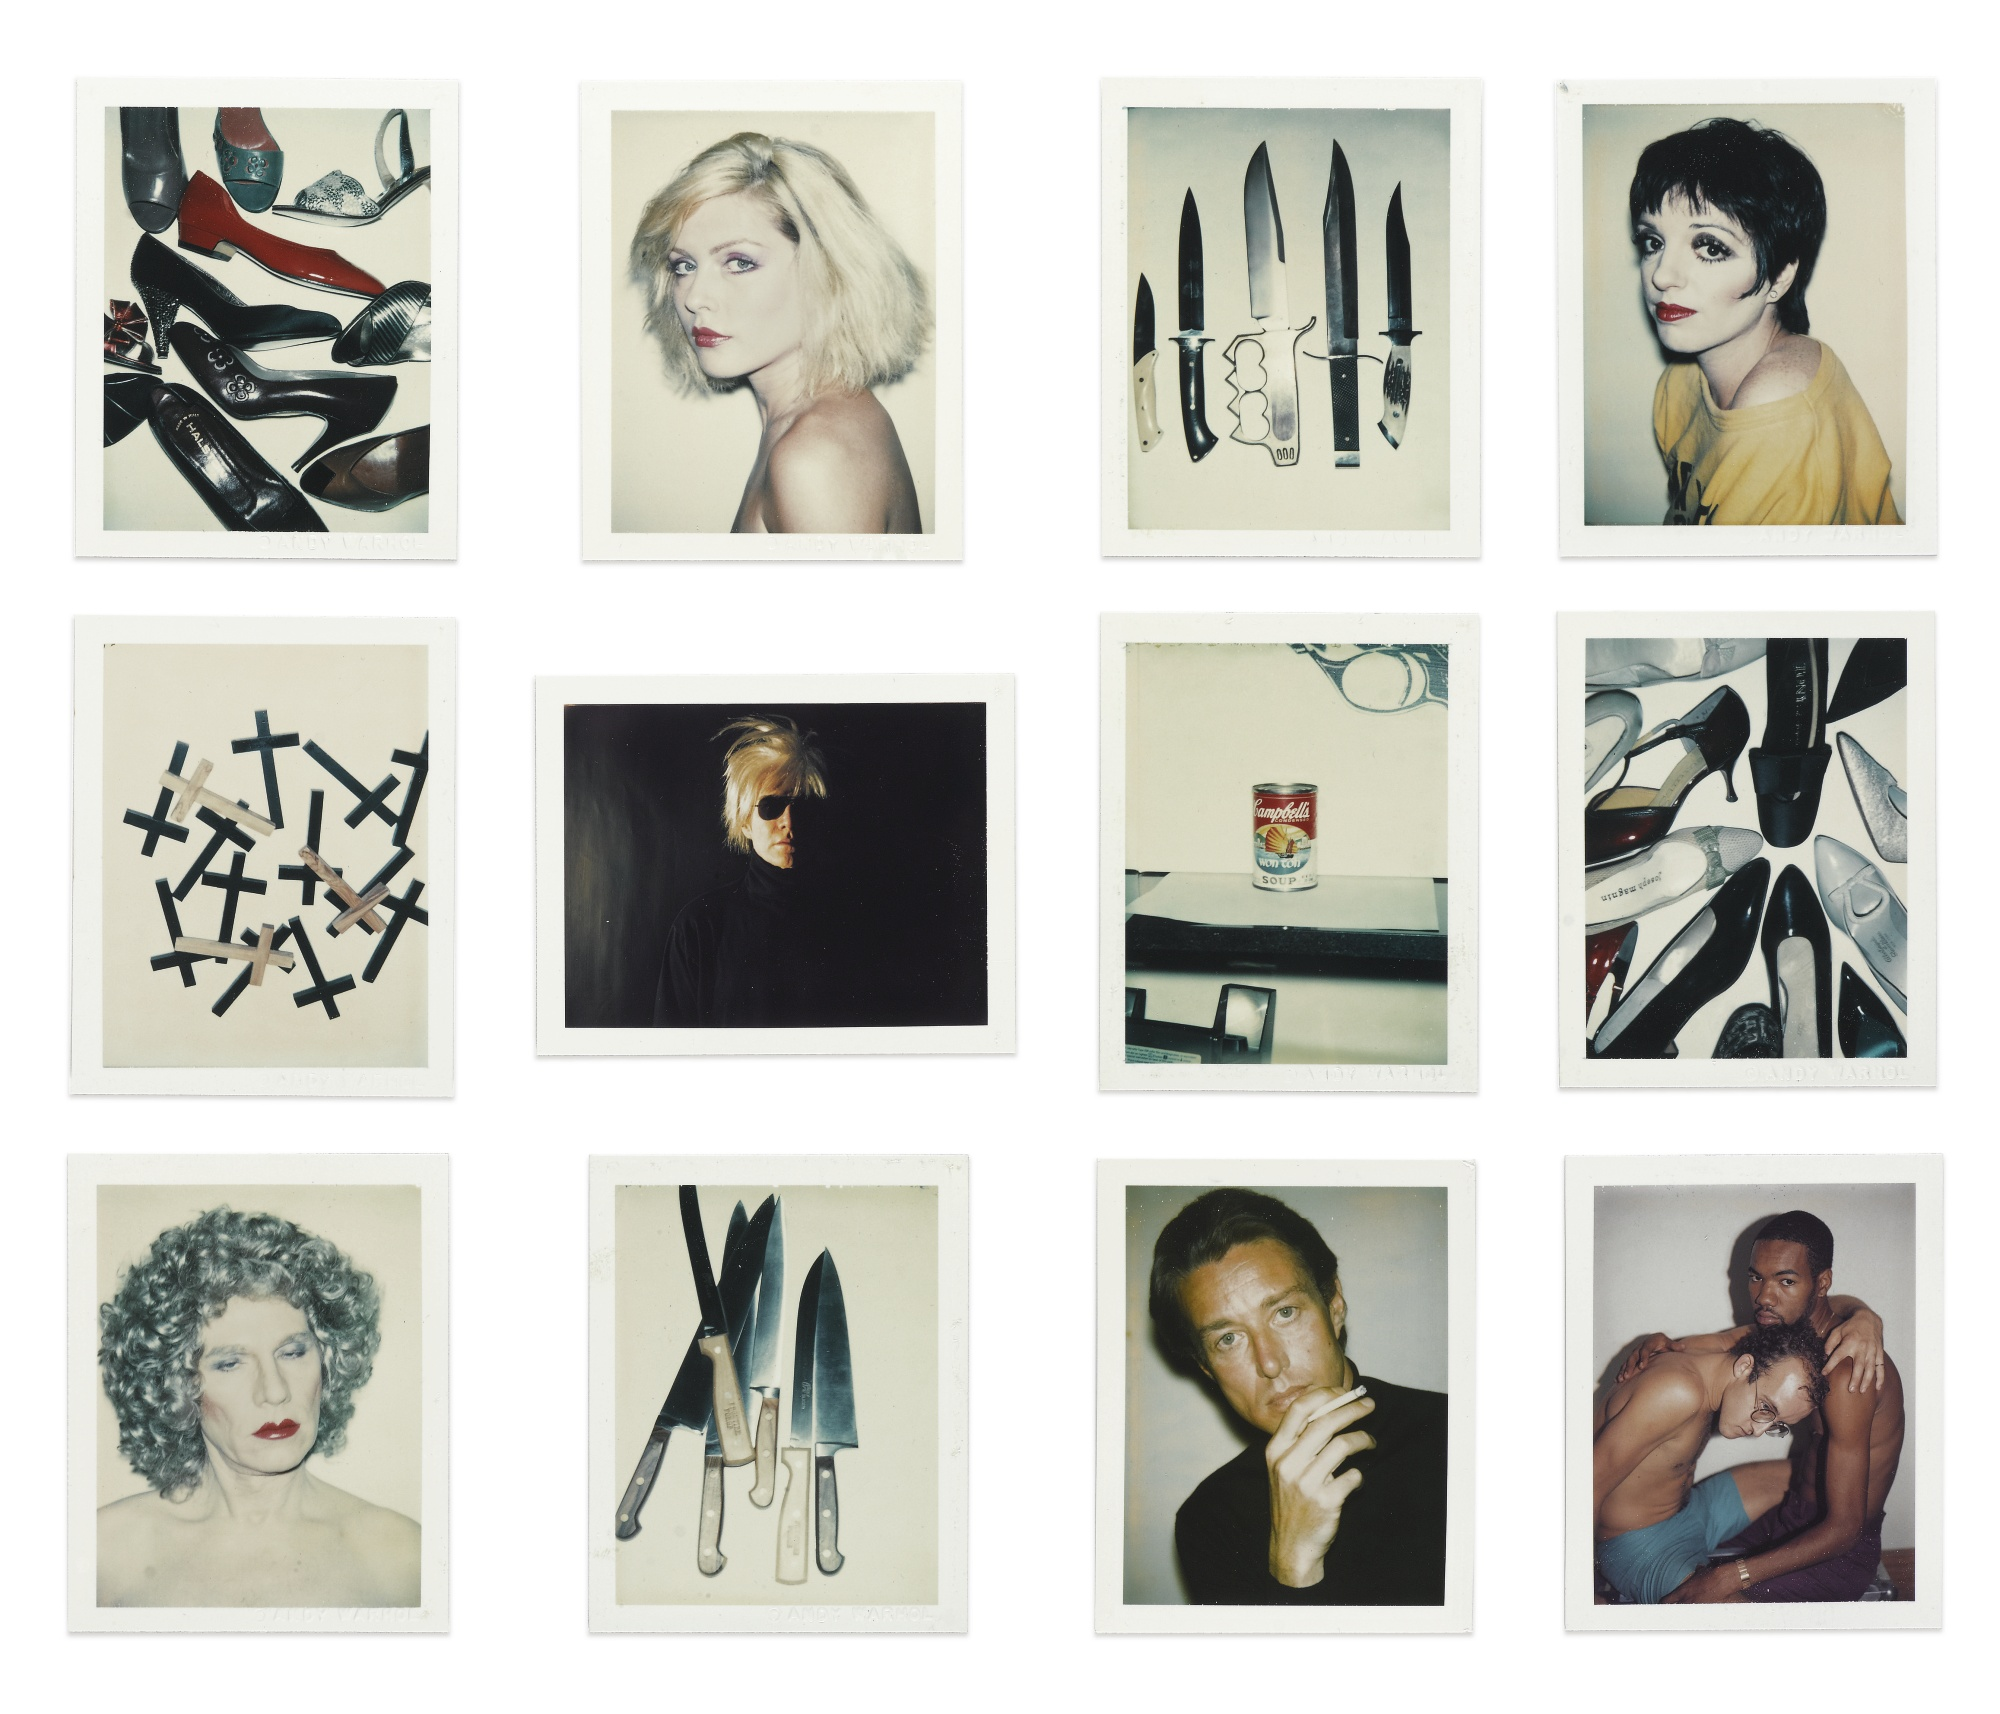 Andy Warhol-I. Shoes; II. Debbie Harry; III. Knives; IV. Liza Minelli; V. Crosses; VI. Self-Portrait With Fright Wig; VII. Campbell's Wonton Soup; VIII. Shoes; IX. Self-Portrait In Drag; X. Knives; XI. Halston; XII. Keith Haring And Juan Dubose[Twelve Works]-1986